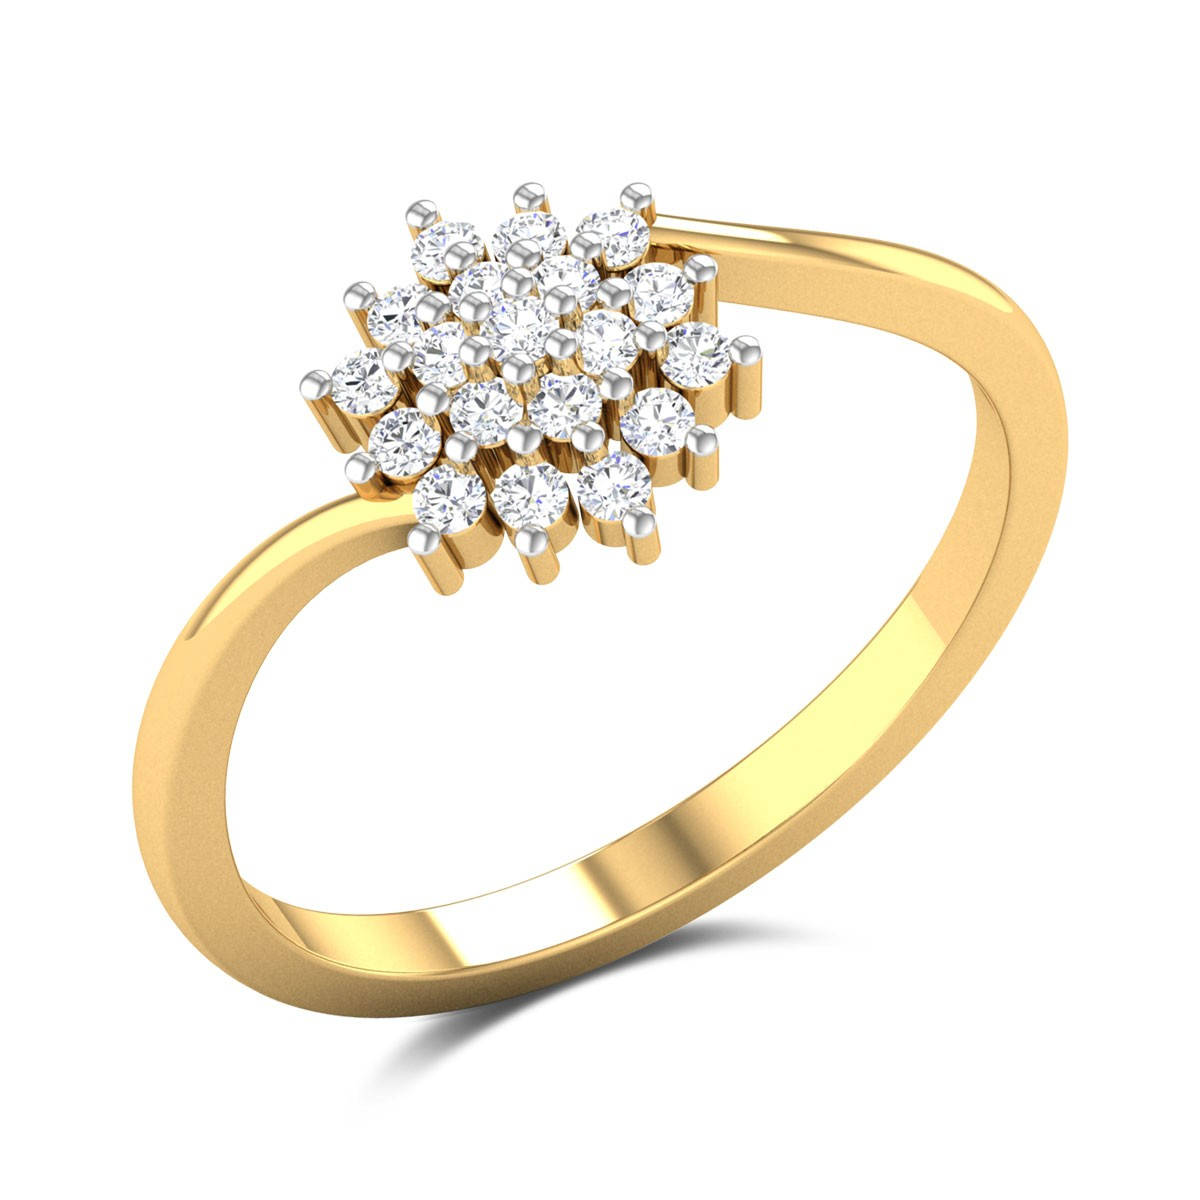 Dandelion Diamond Ring